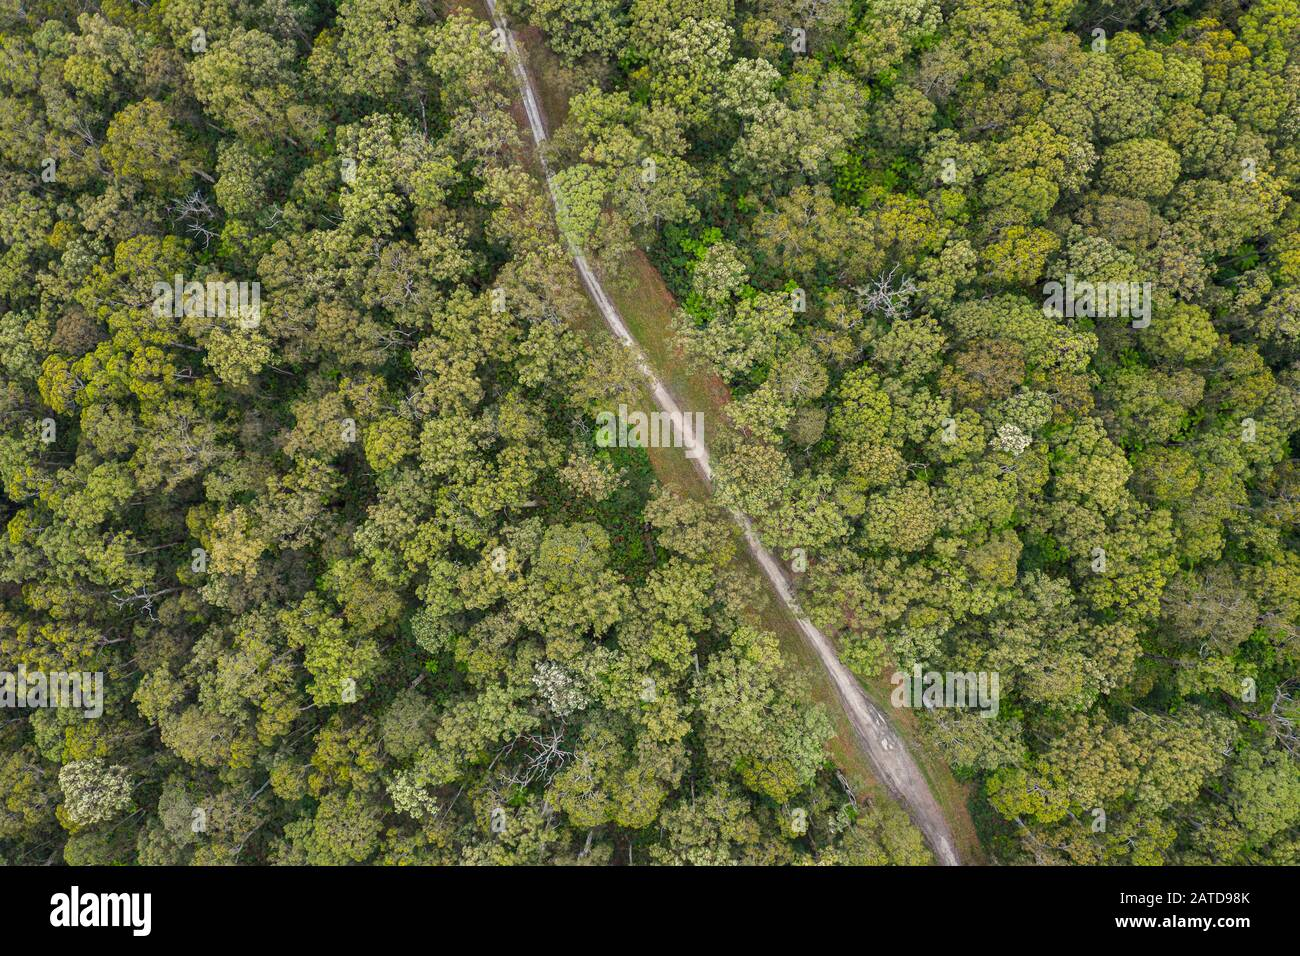 Aerial view of a road through forest, Great Otway National Park, Victoria, Australia Stock Photo